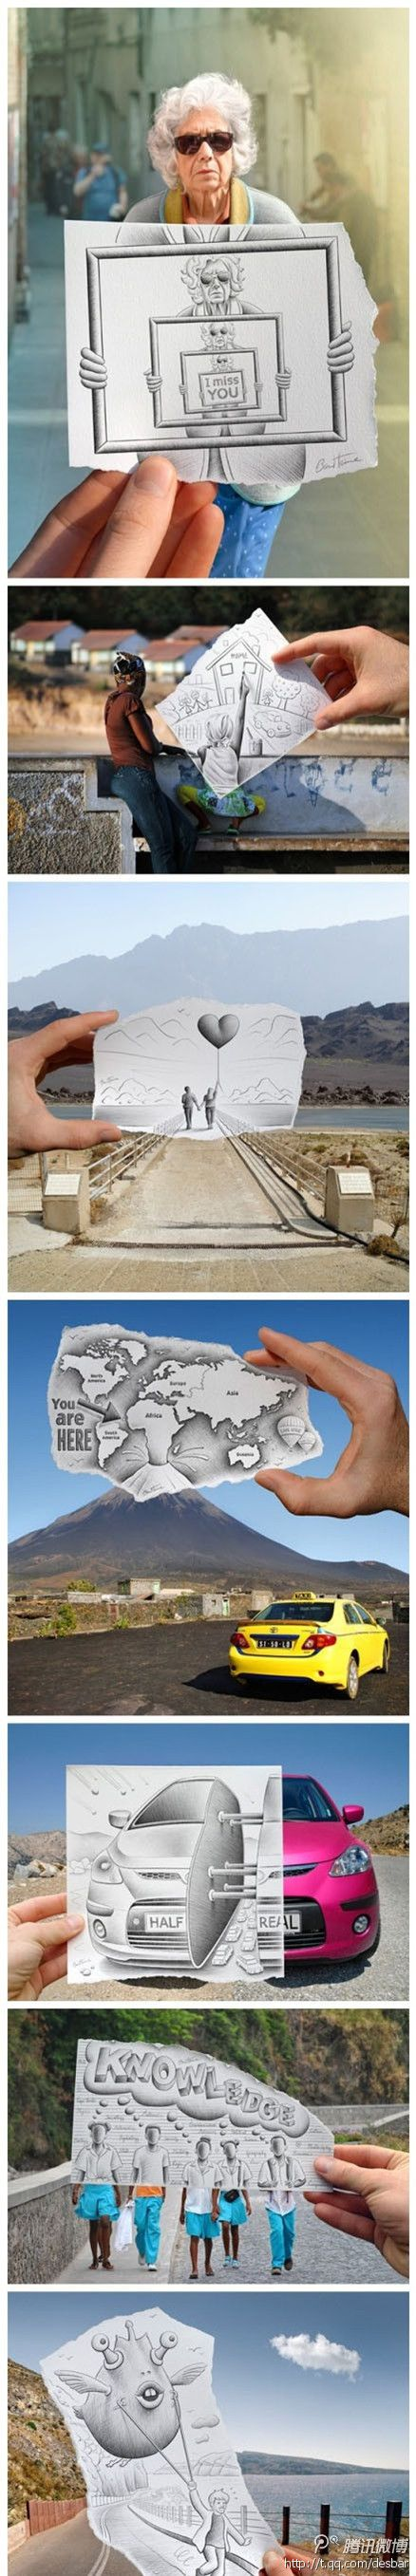 Creative camera art by Ben Heine. More images after the link jump. Great project for perspective